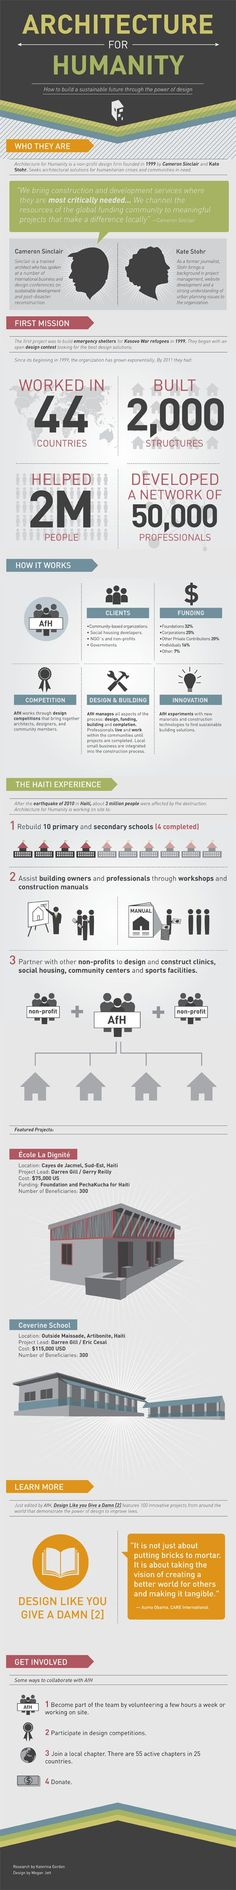 Infographic: Architecture for Humanity